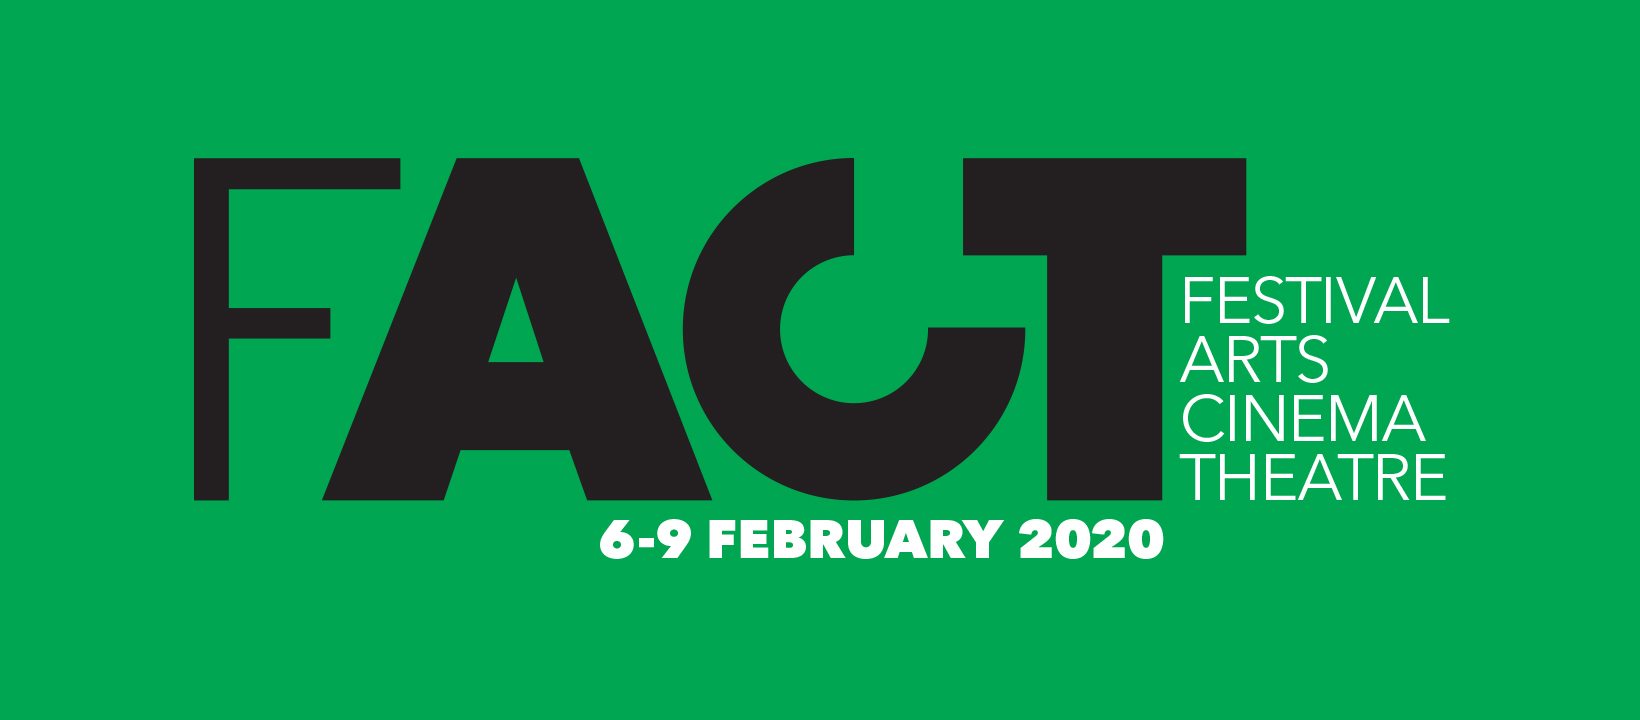 FACT – Festival Arts Cinema Theatre